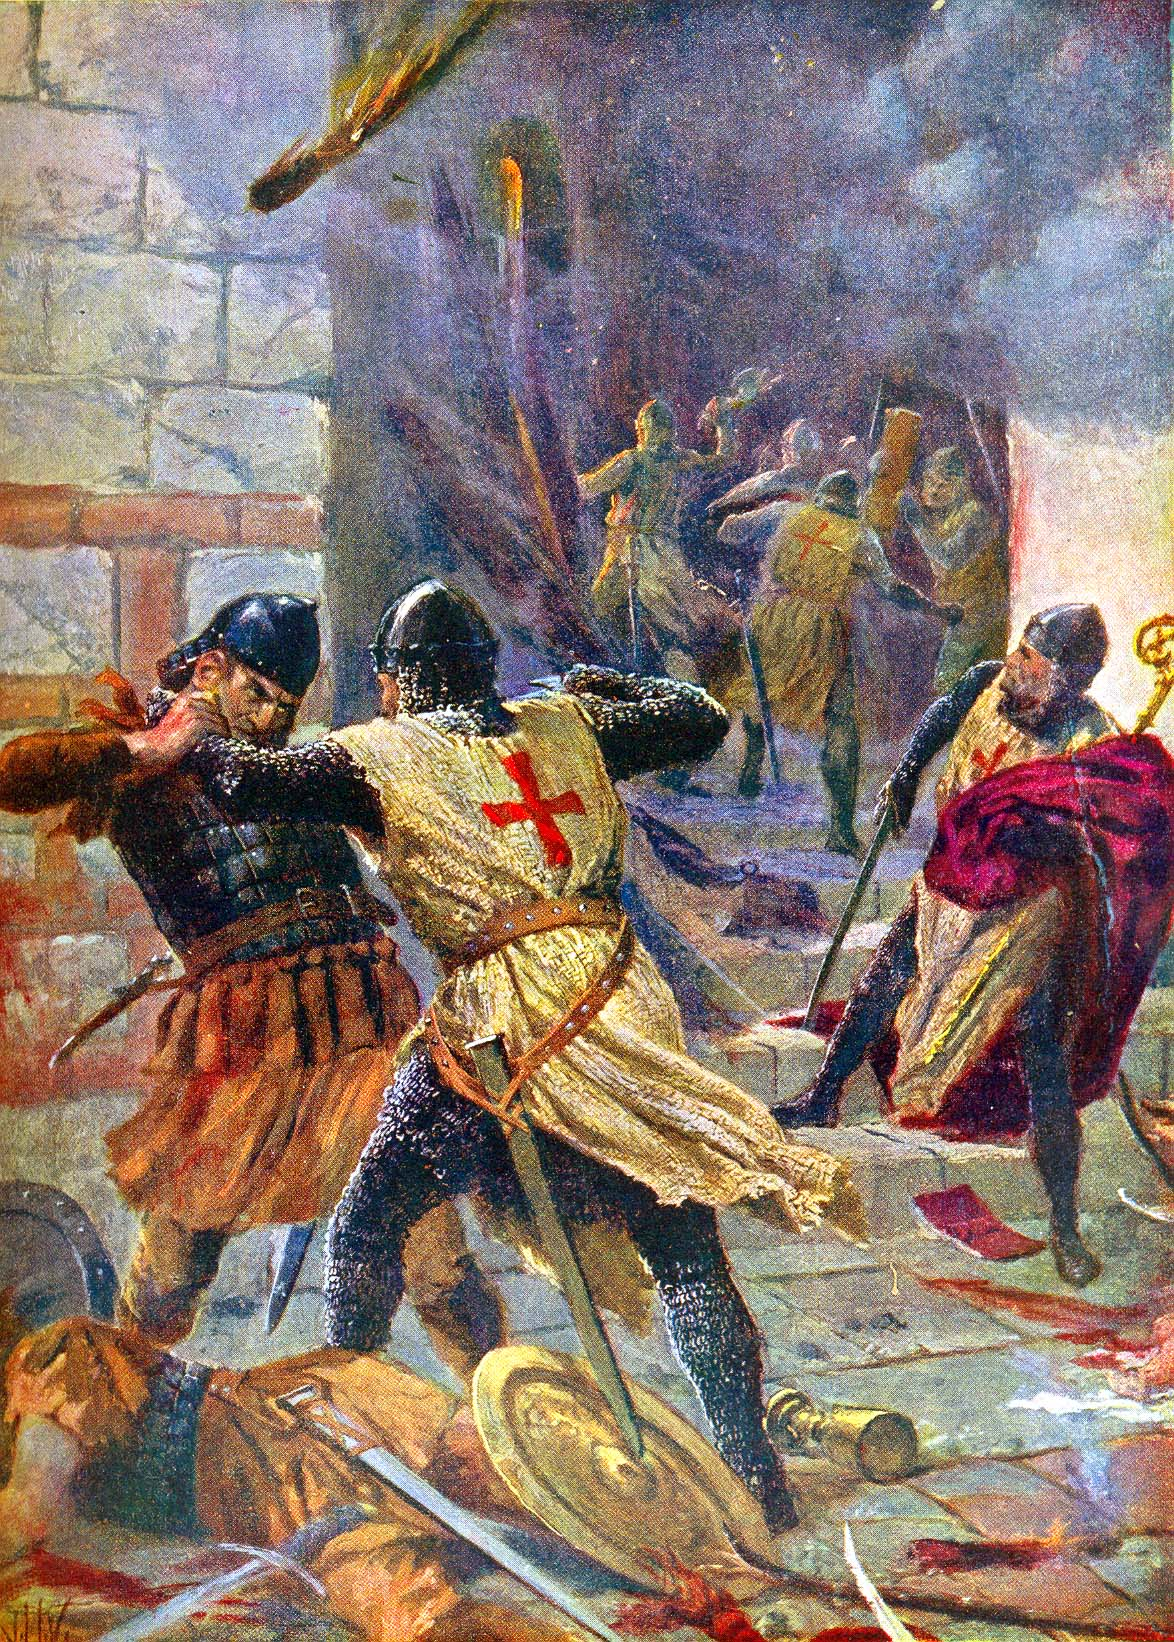 essay on sack of constantinople 1204 Constantine, xi - biography from the latins and heroically commanded the futile defense of constantinople against the died bravely during the ensuing sack.